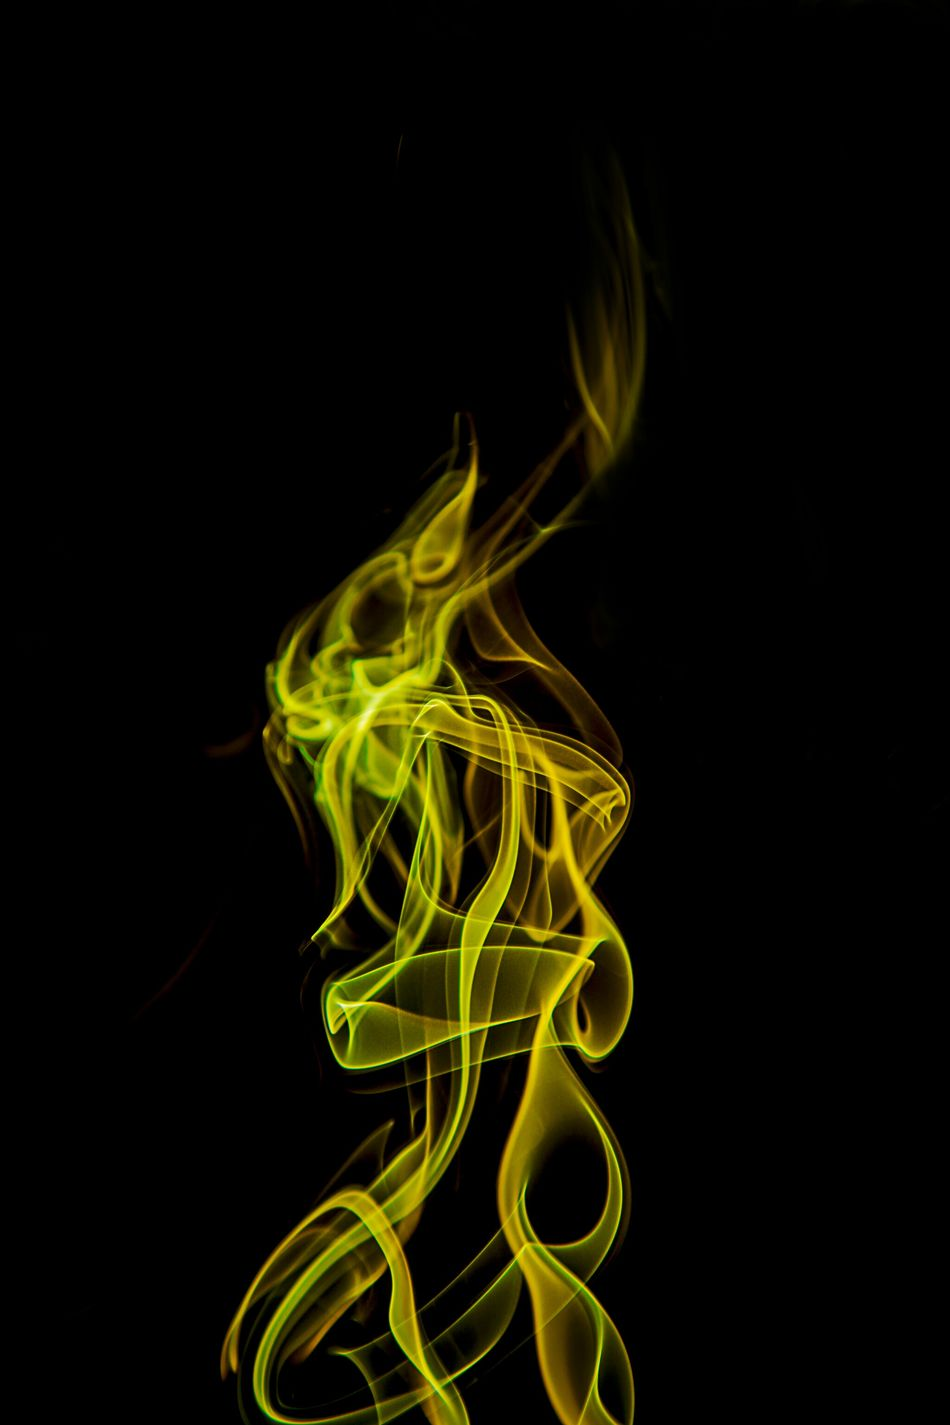 EyeEm Gallery Smoke Neon EyeEm Yellow Smoke Smoke Time Smoker Smoked Smoke Tricks Colored Smoke Isolated Smoke Black Background Textured  Textures Isolated Shapes